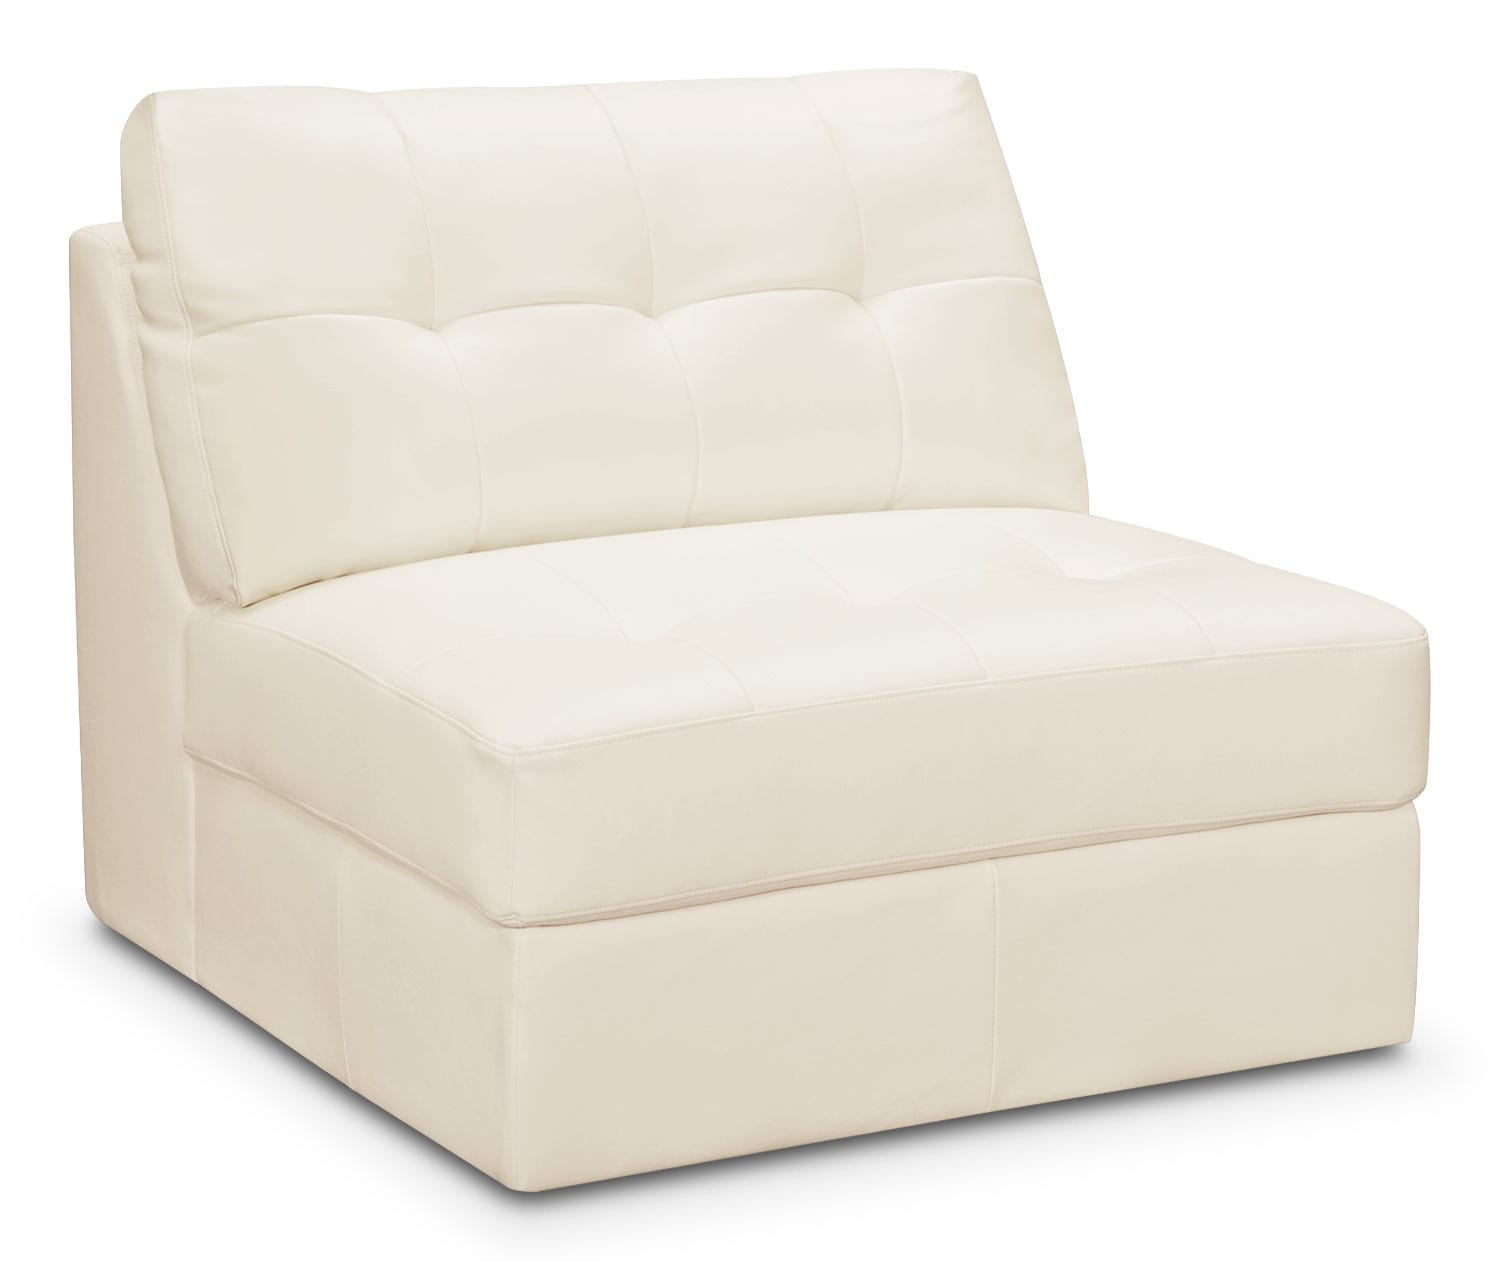 Living Room Furniture - Cayenne Armless Chair - White